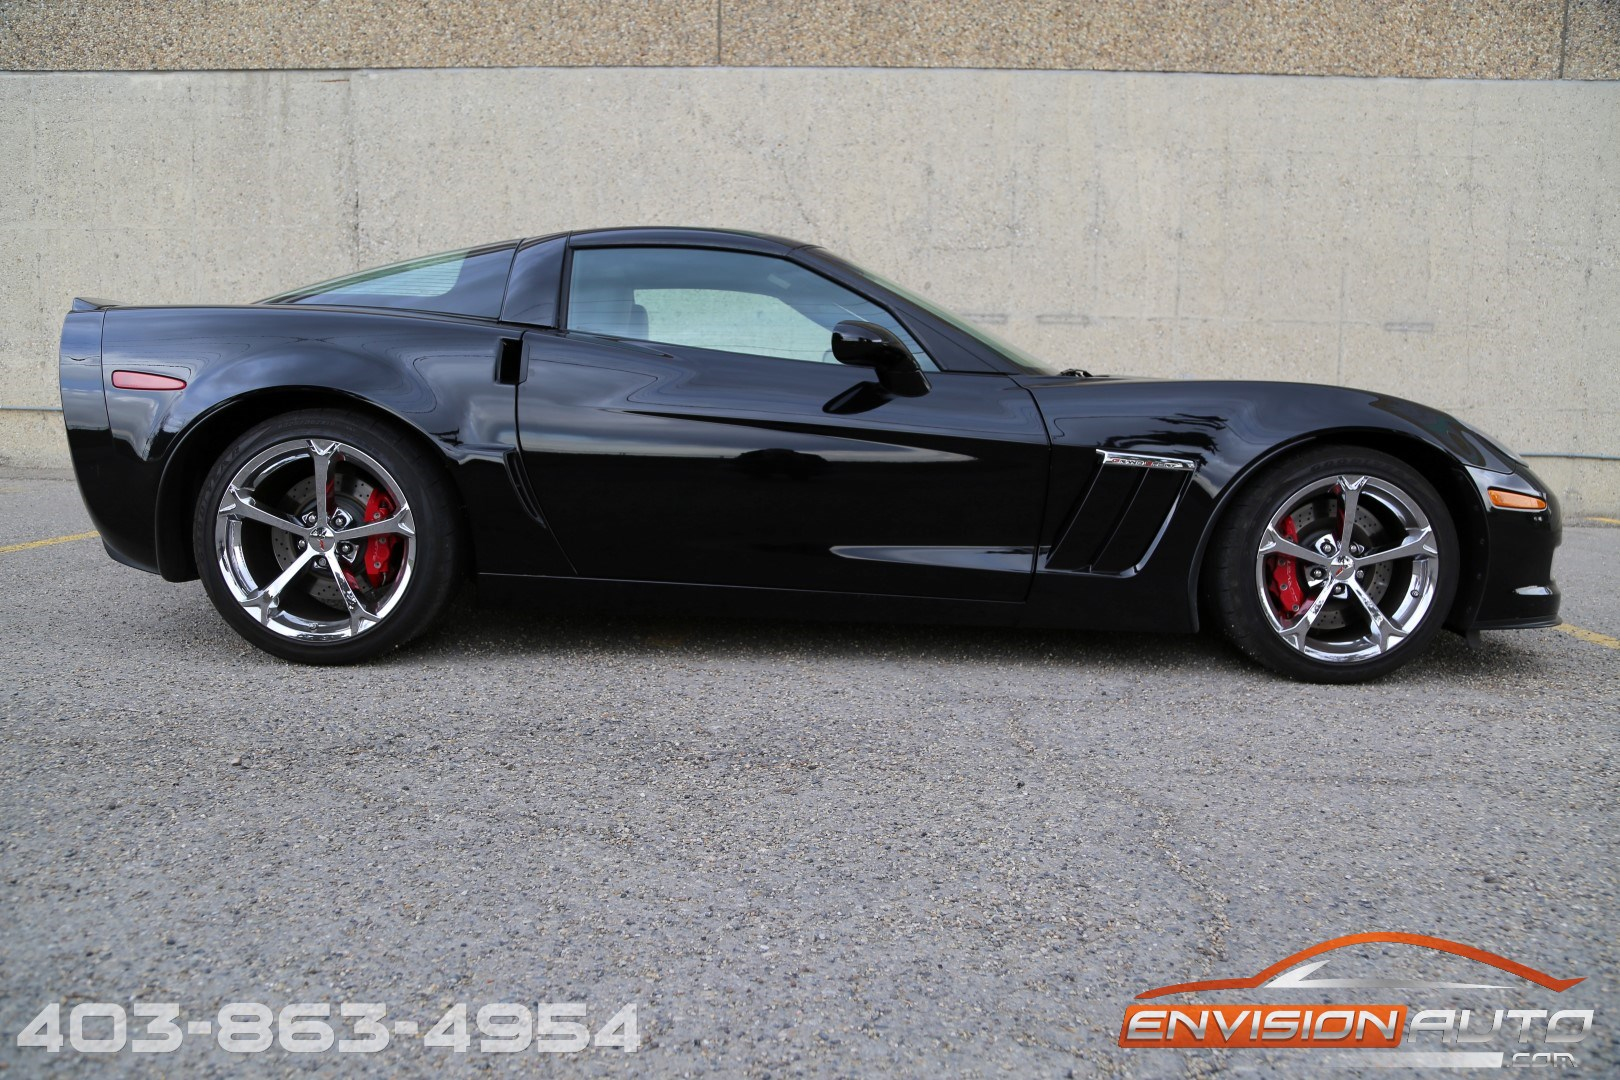 2013 chevrolet corvette grand sport coupe 3lt 60th. Black Bedroom Furniture Sets. Home Design Ideas